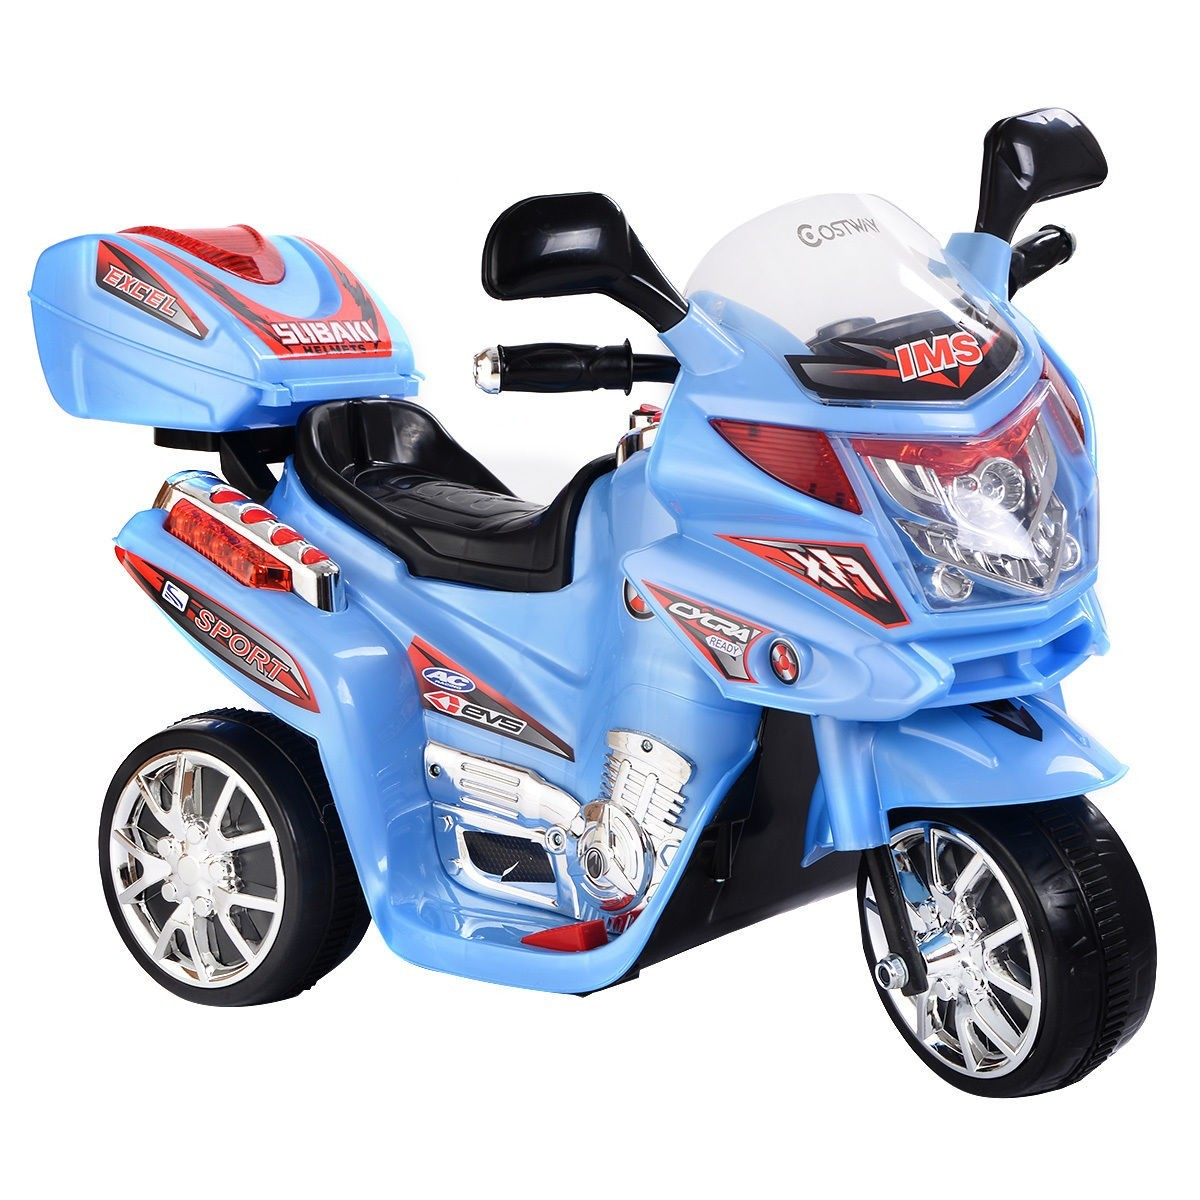 Kids Ride On Motorcycle 6V Battery Powered Electric Toy Power Bicyle New Blue